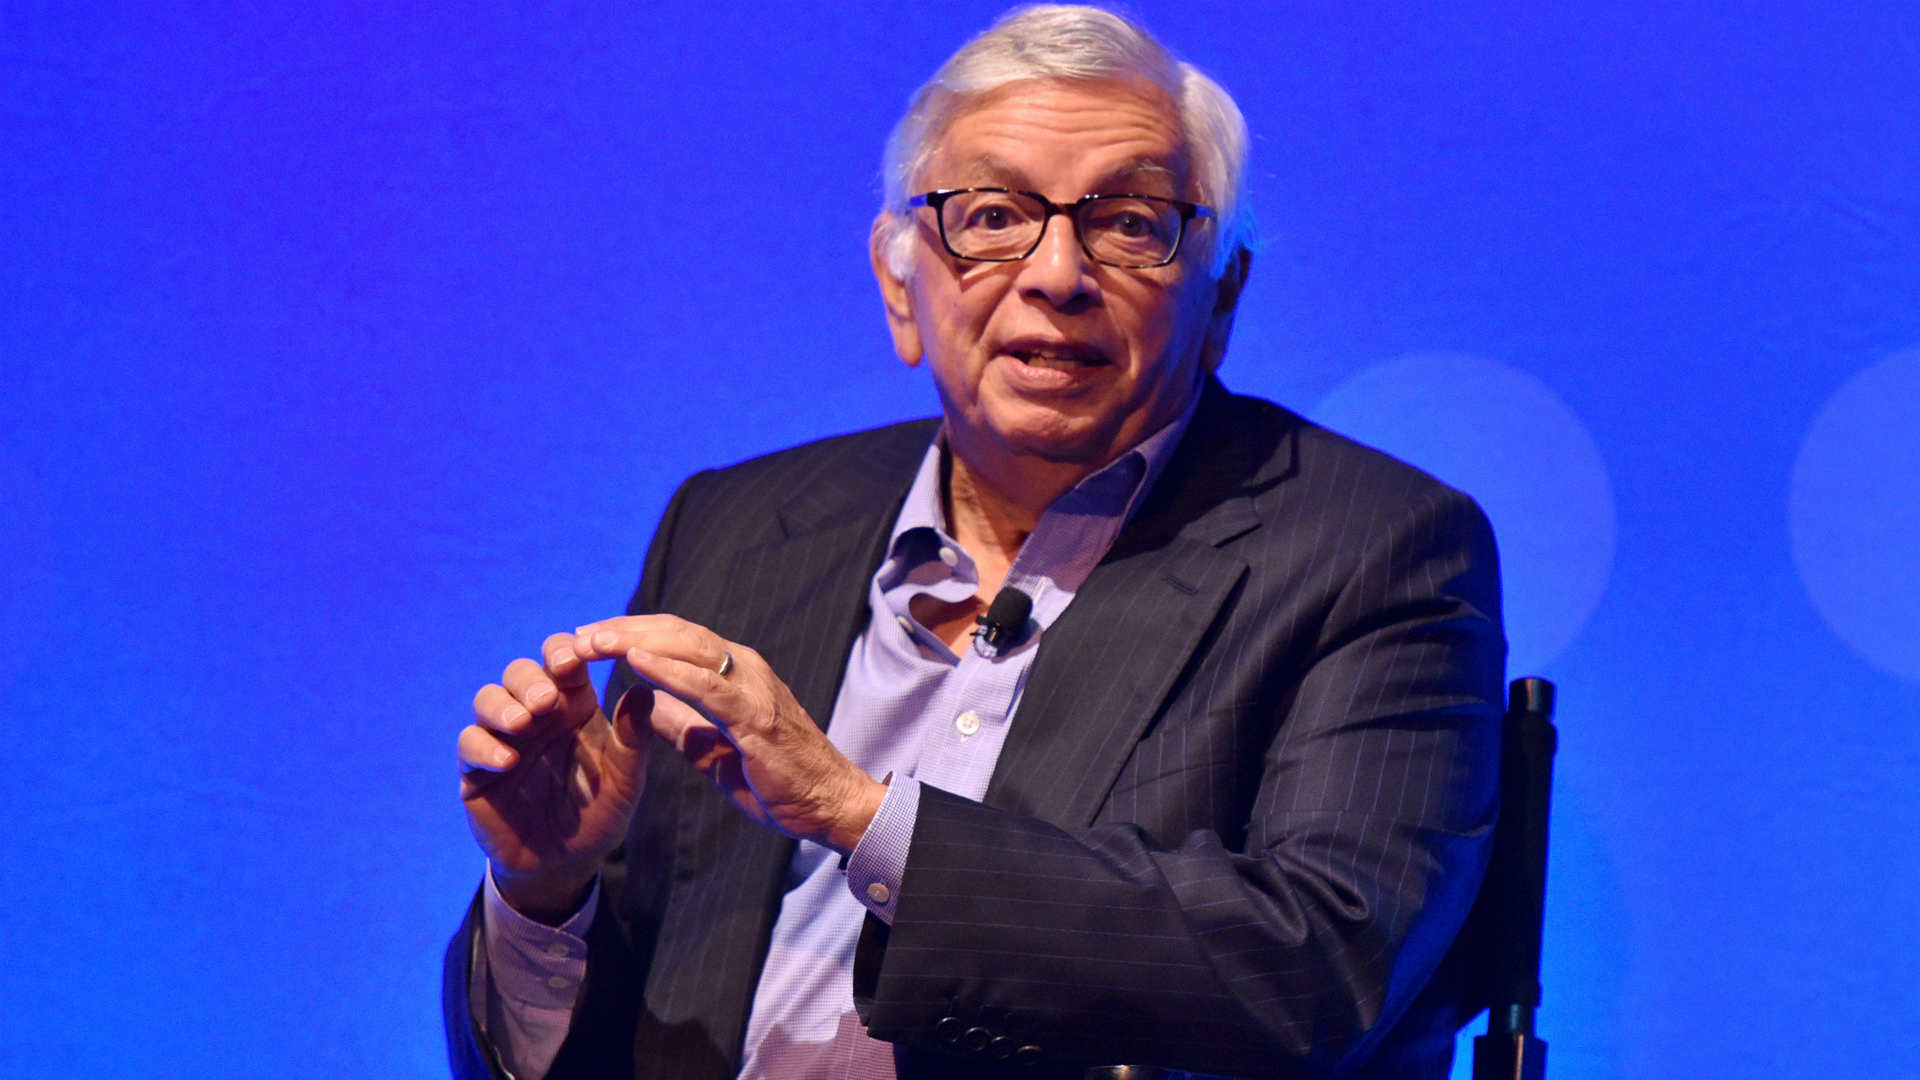 Former Commissioner David Stern: Medical marijuana should be removed from banned list